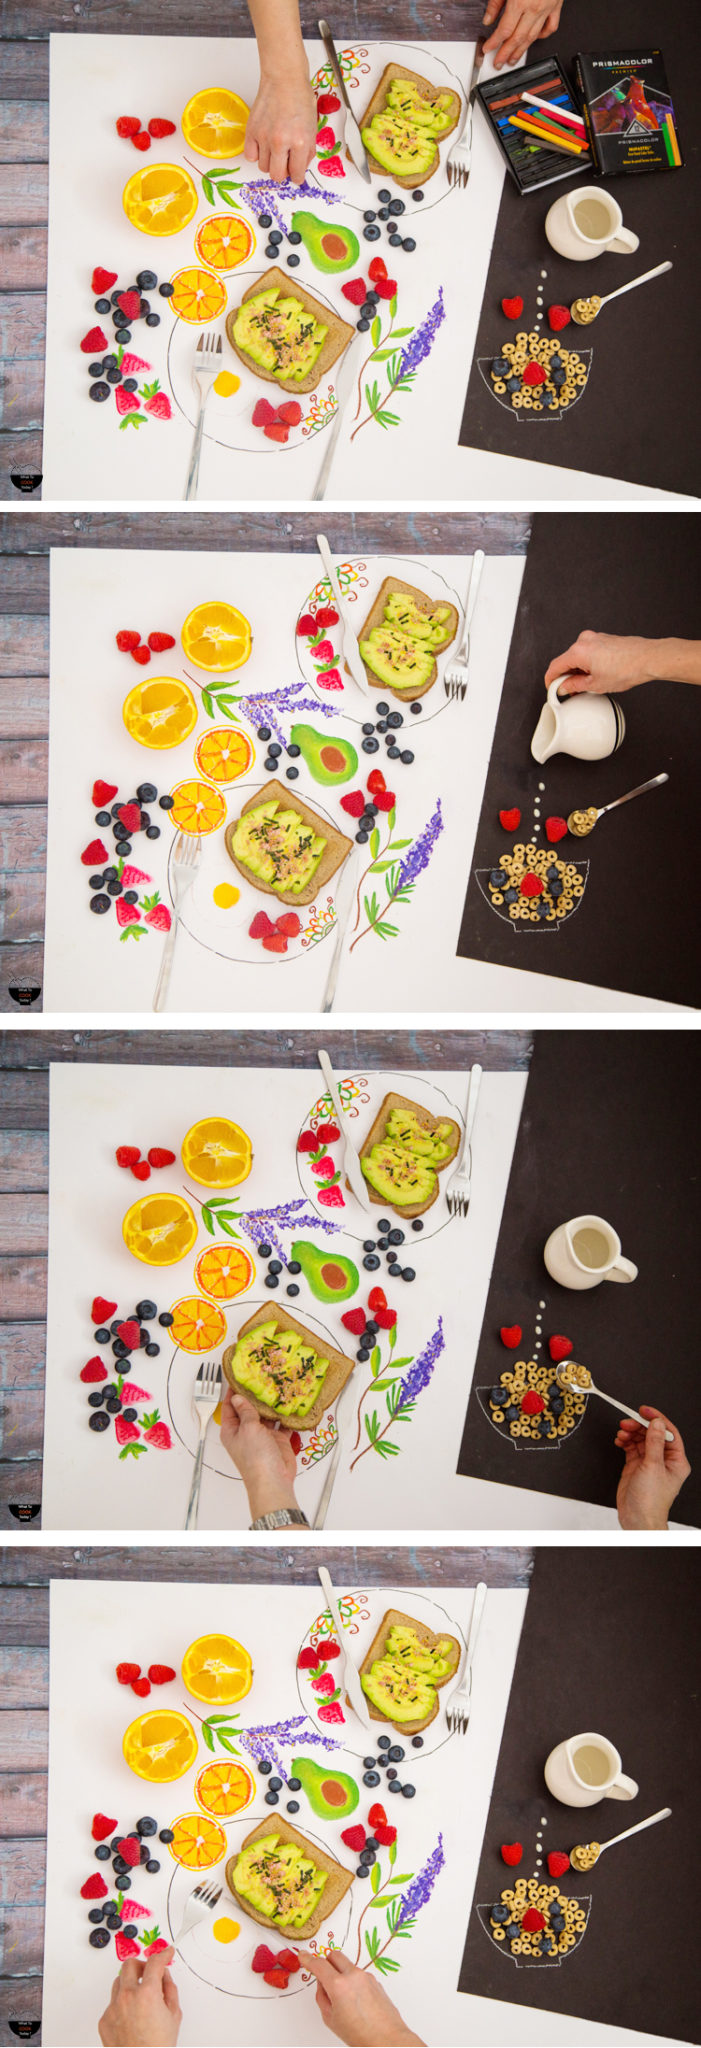 "Color your breakfast and eat it too. It's fun to combine illustration with real food objects. I love the ""surreal"" effect they give. #relaxandcolor #coloringwithMichaels #Pmedia #ad @MichaelsStores"